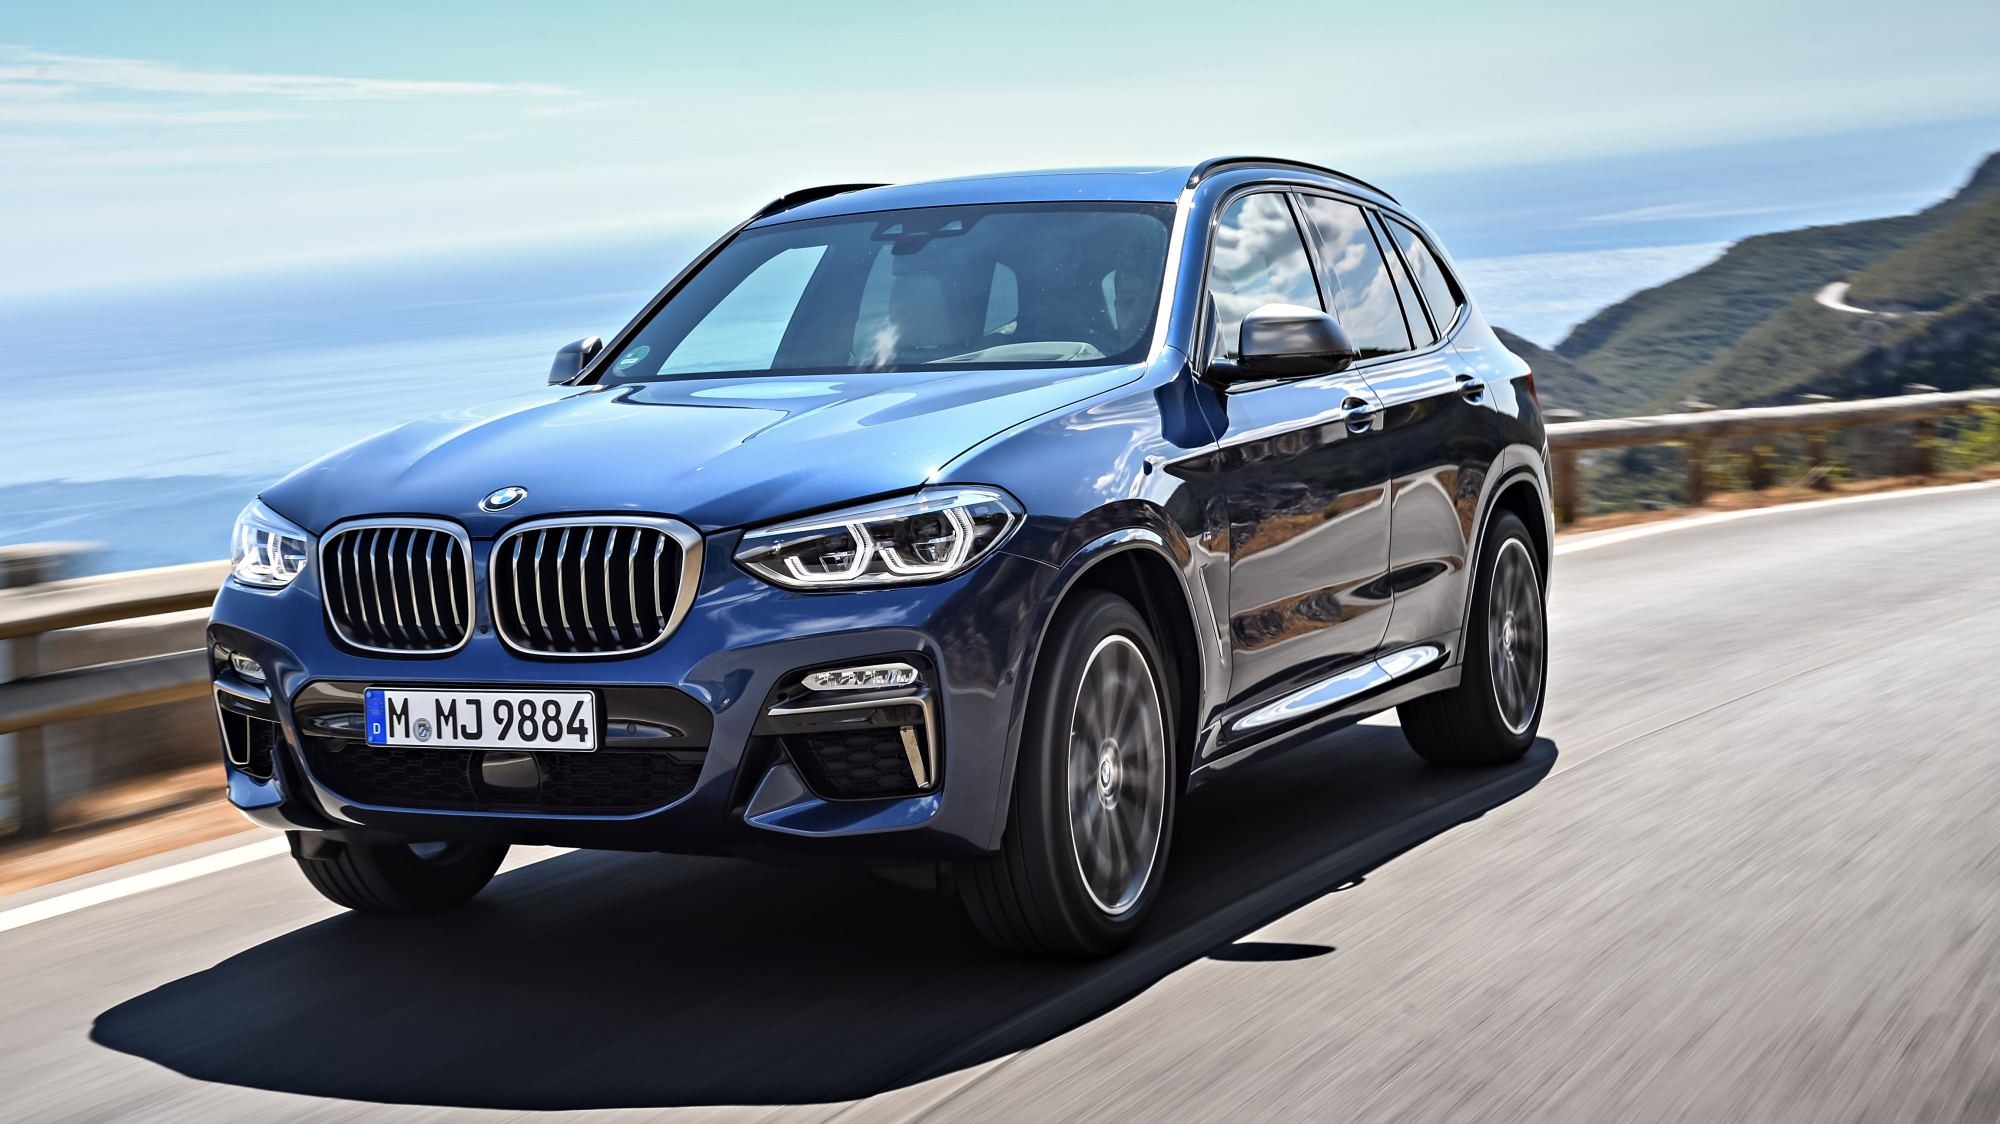 News 265kw Bmw X3 M40i Confirmed For Oz Due In July